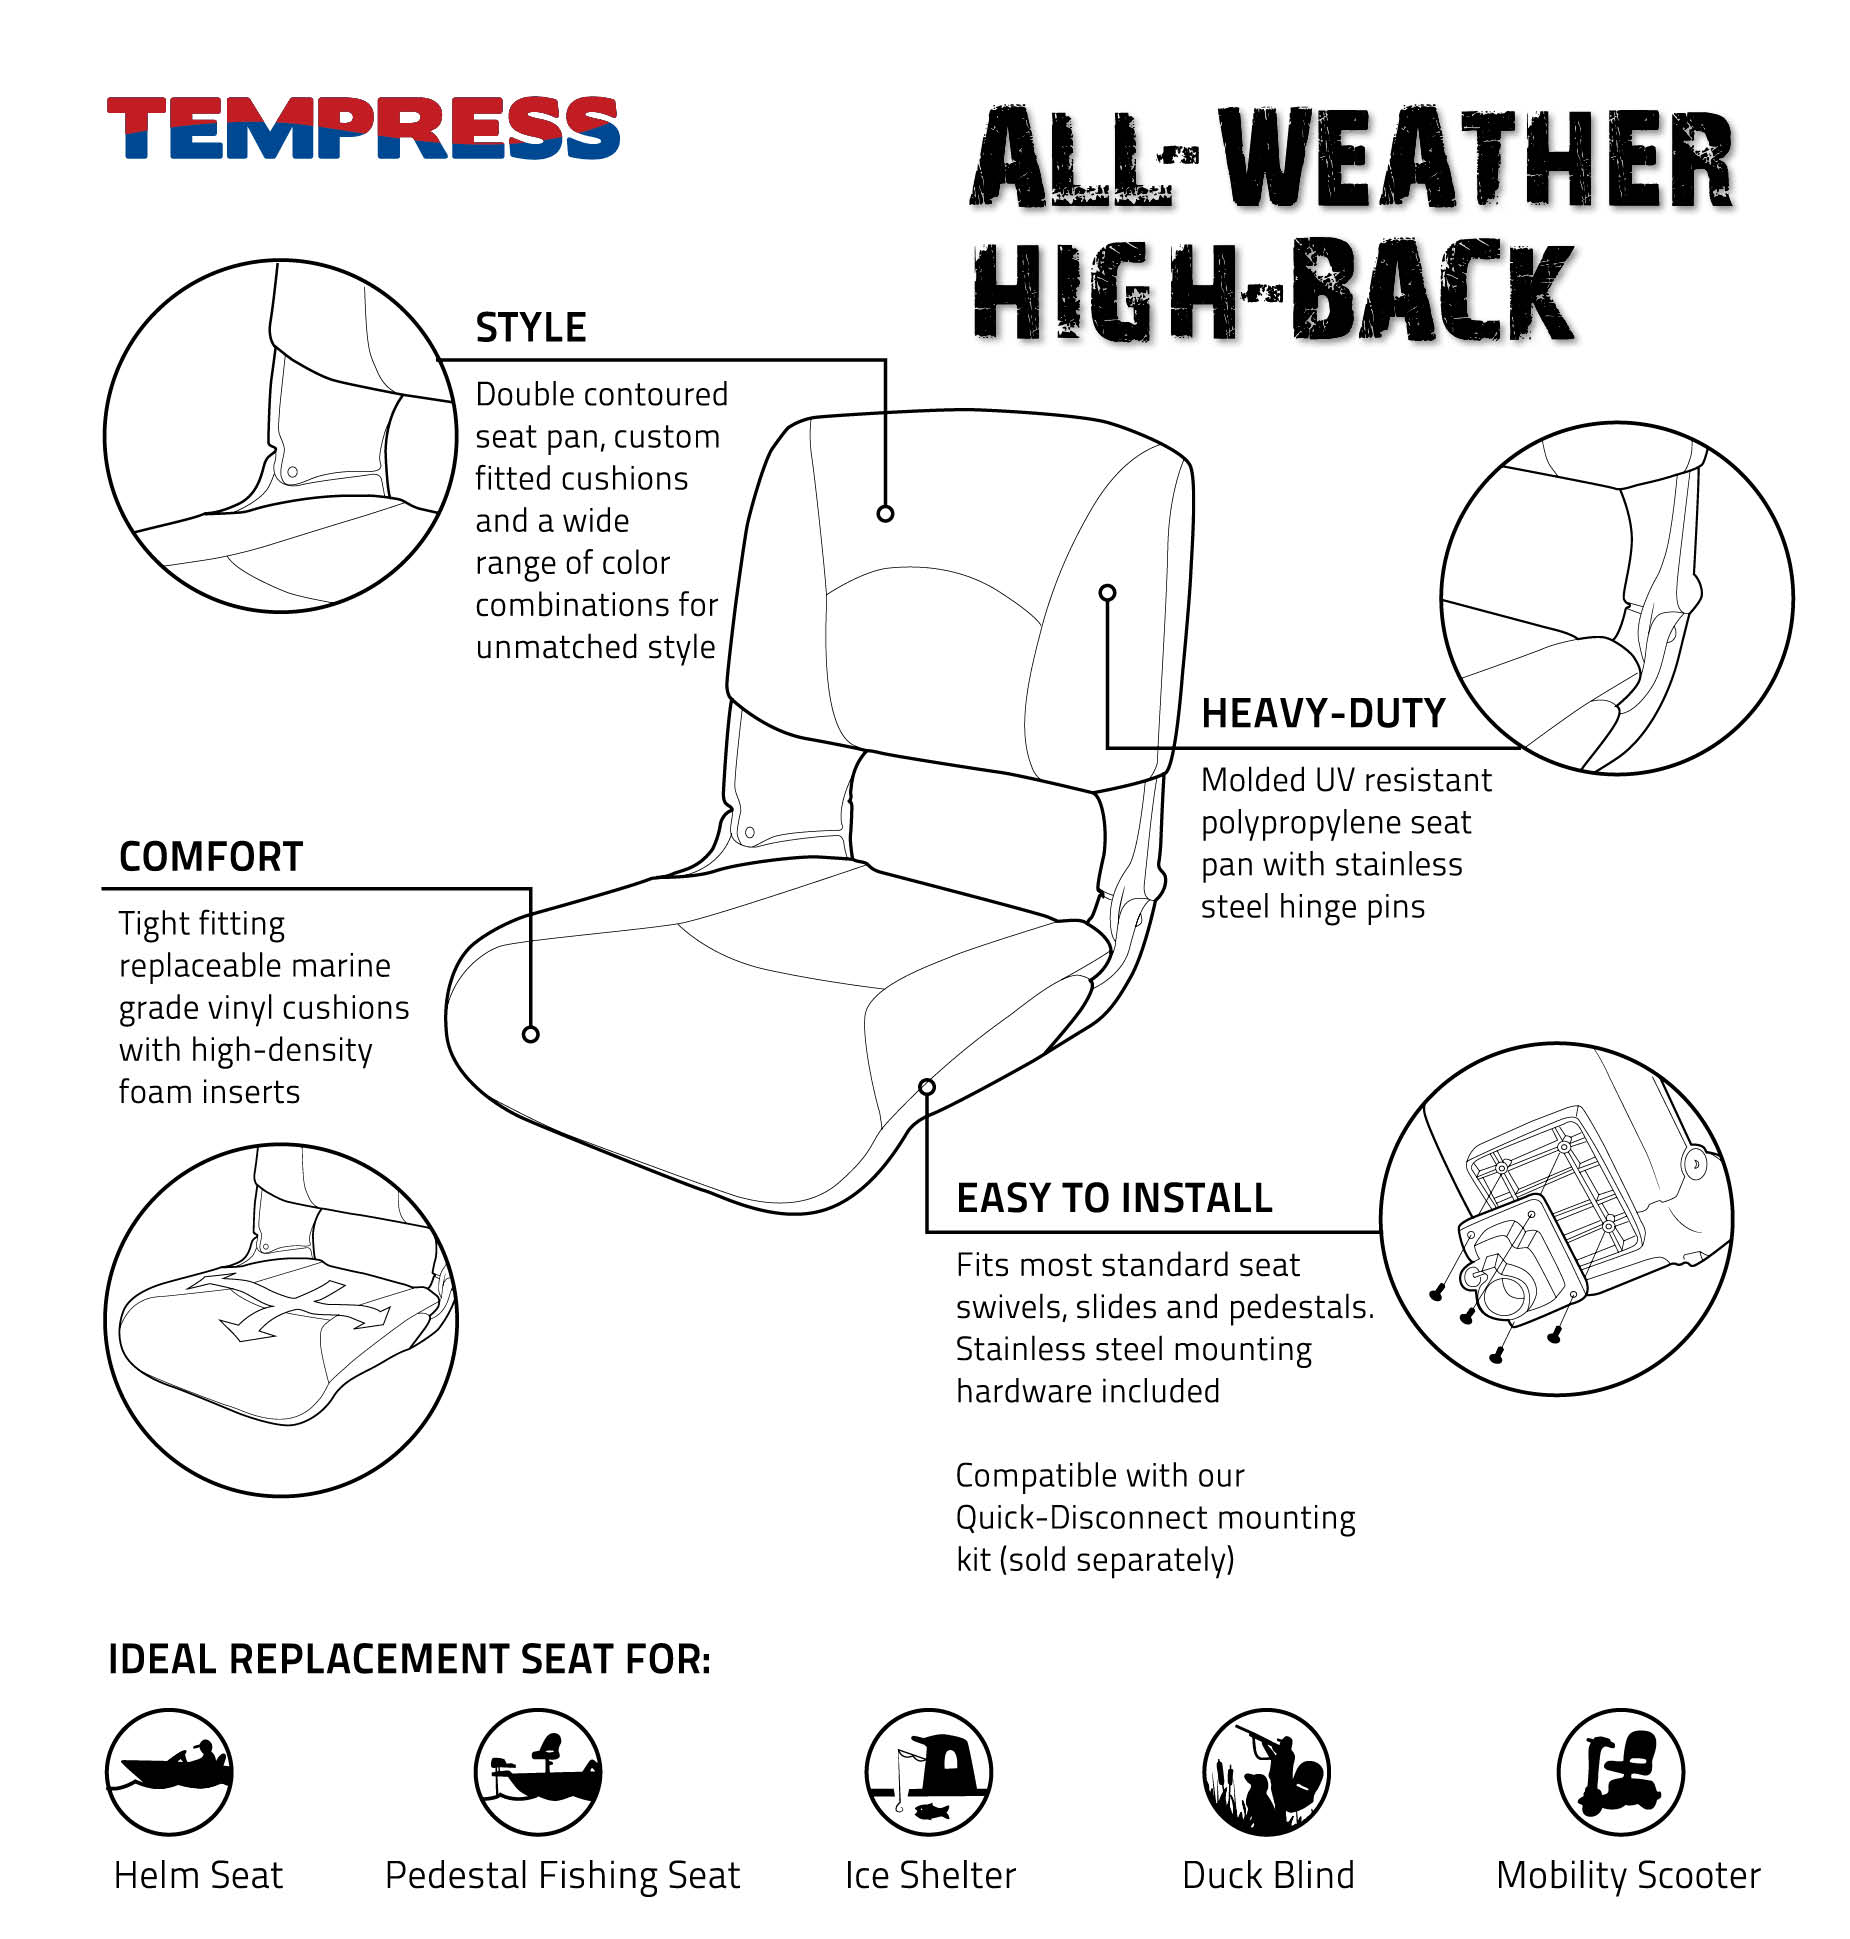 Tempress All Weather High Back Key Points